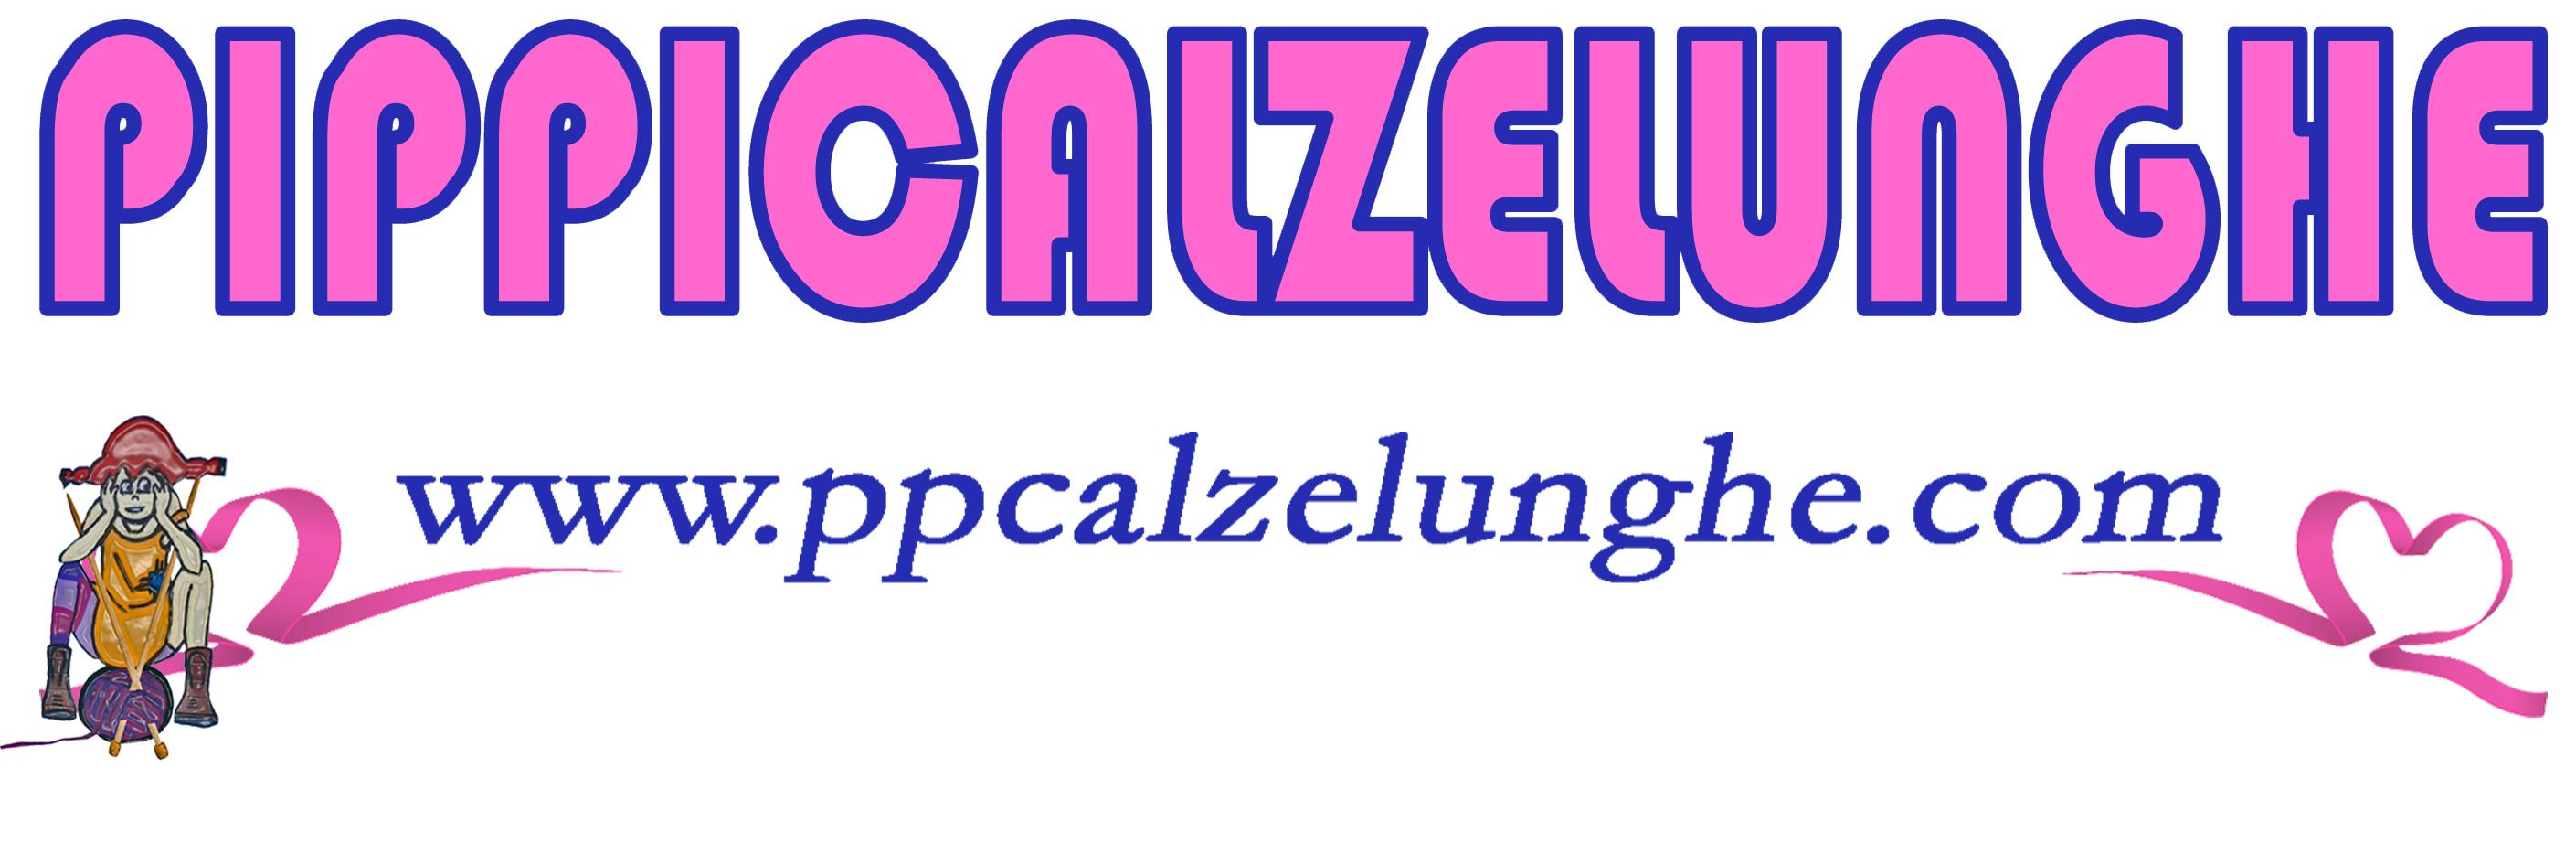 ppcalzelunghe.com